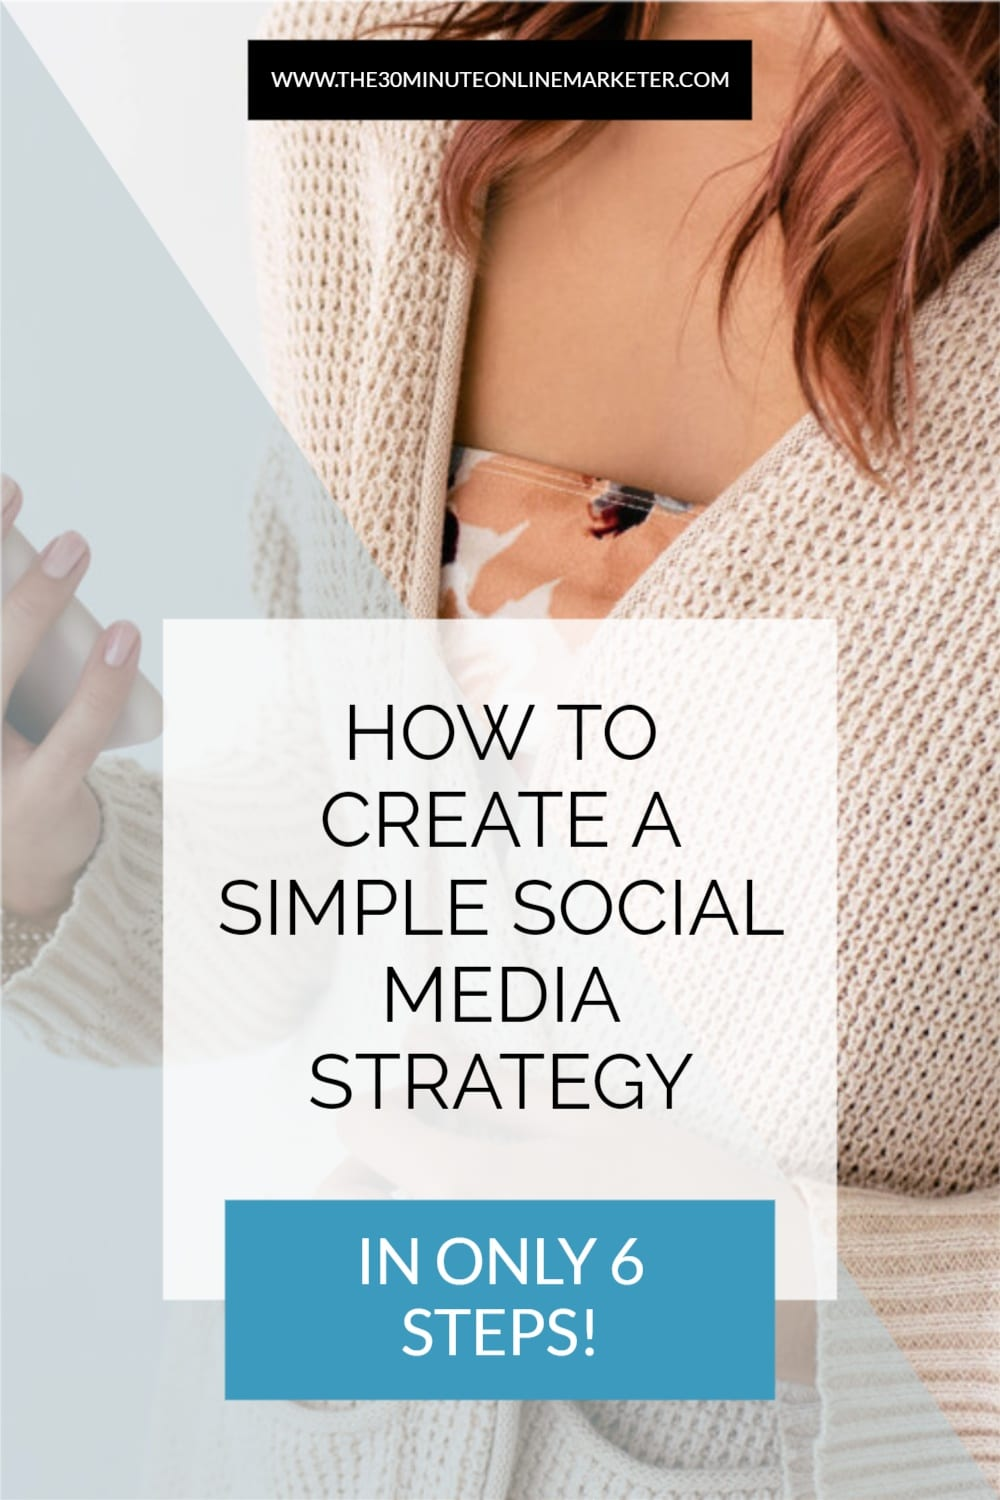 Create a Social Media Strategy in 6 Super-Simple Steps